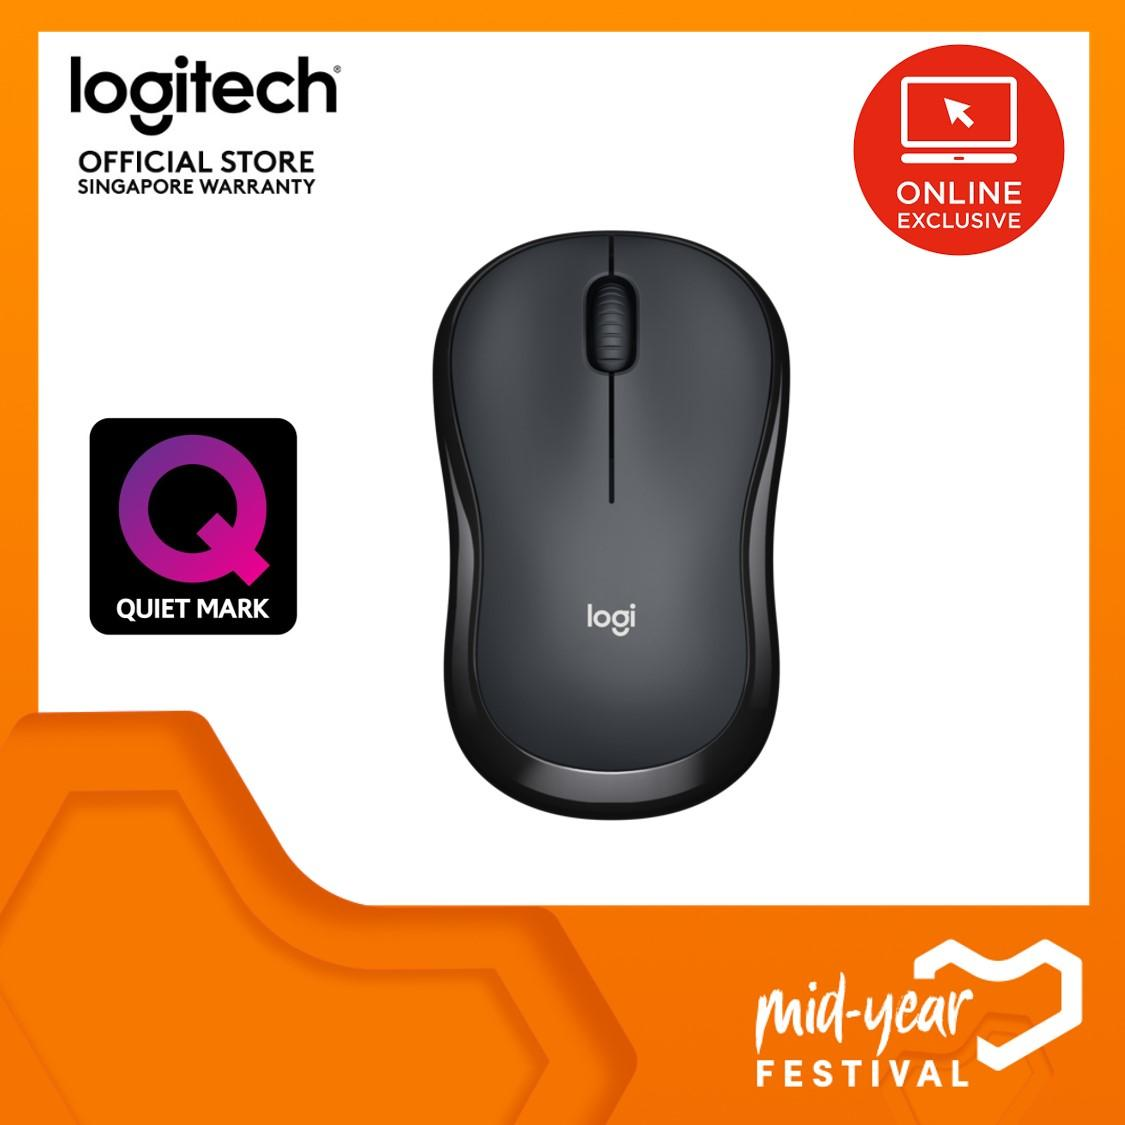 b27a7fb1ac4 Logitech M220 Silent Wireless Mobile Mouse - Charcoal (Online Exclusive)